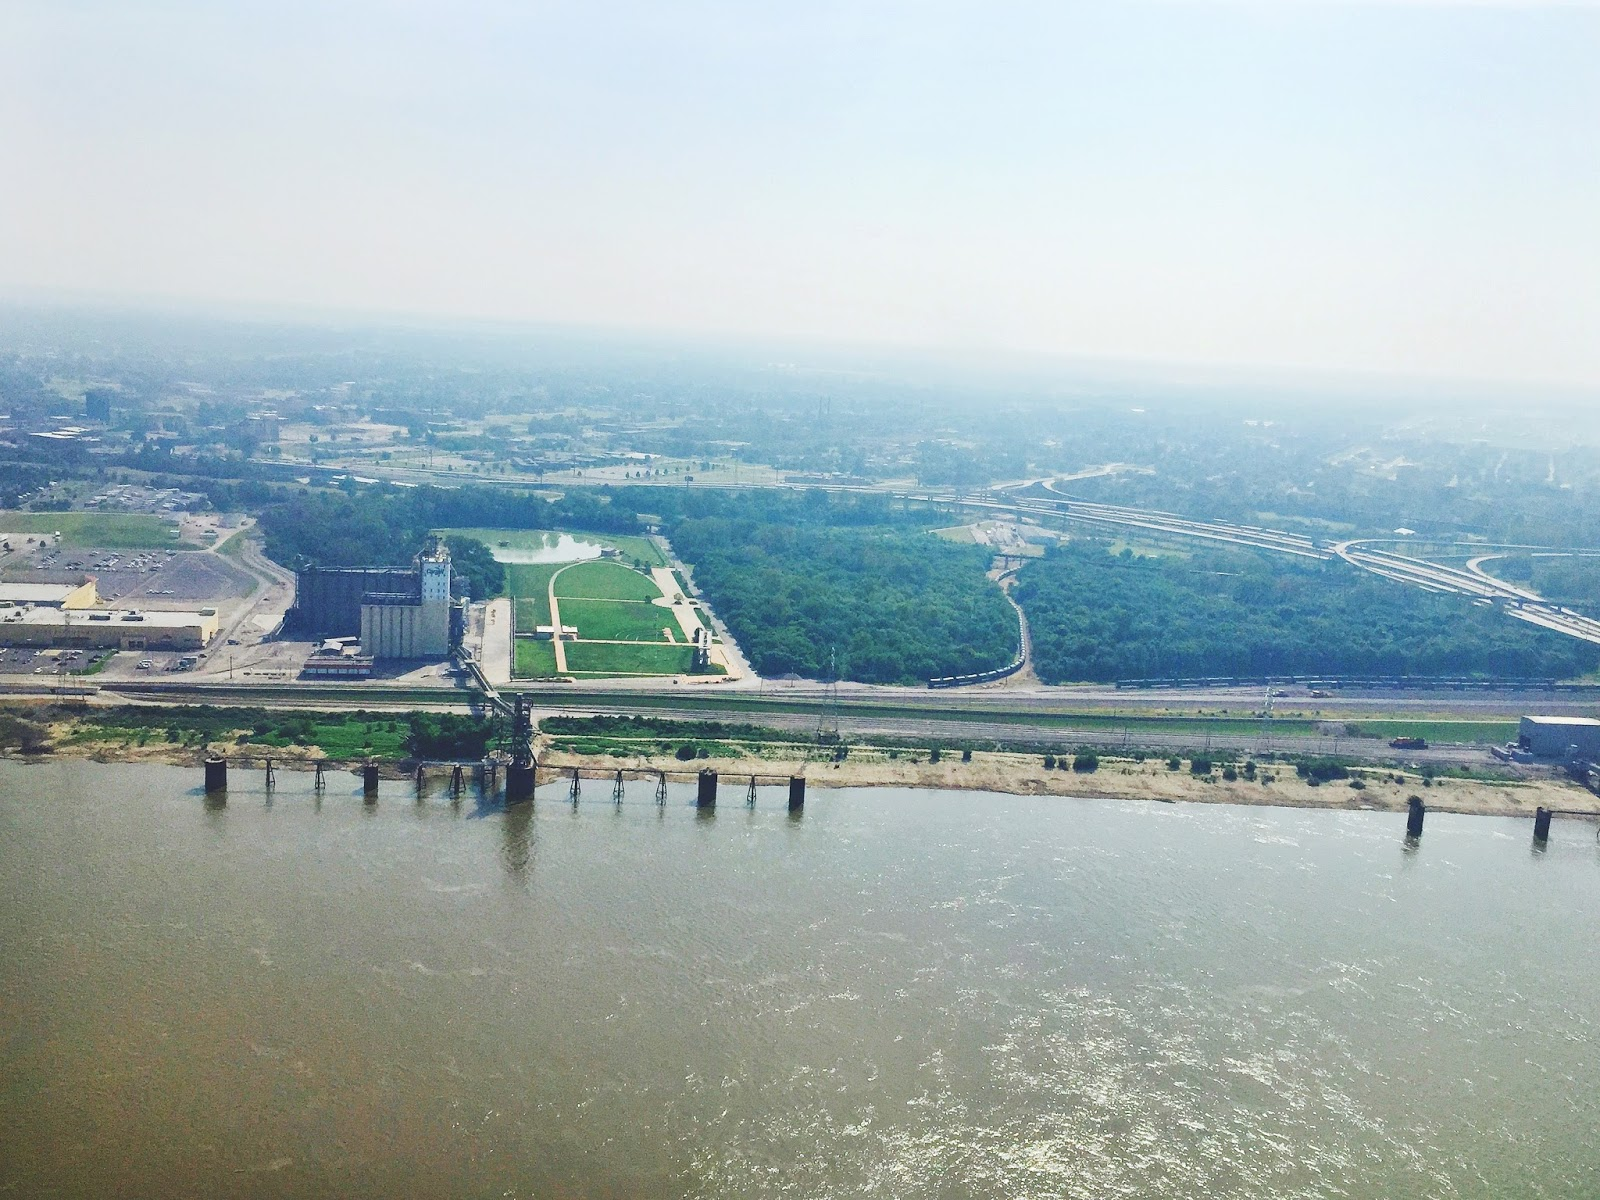 View of East St. Louis and the Mississippi